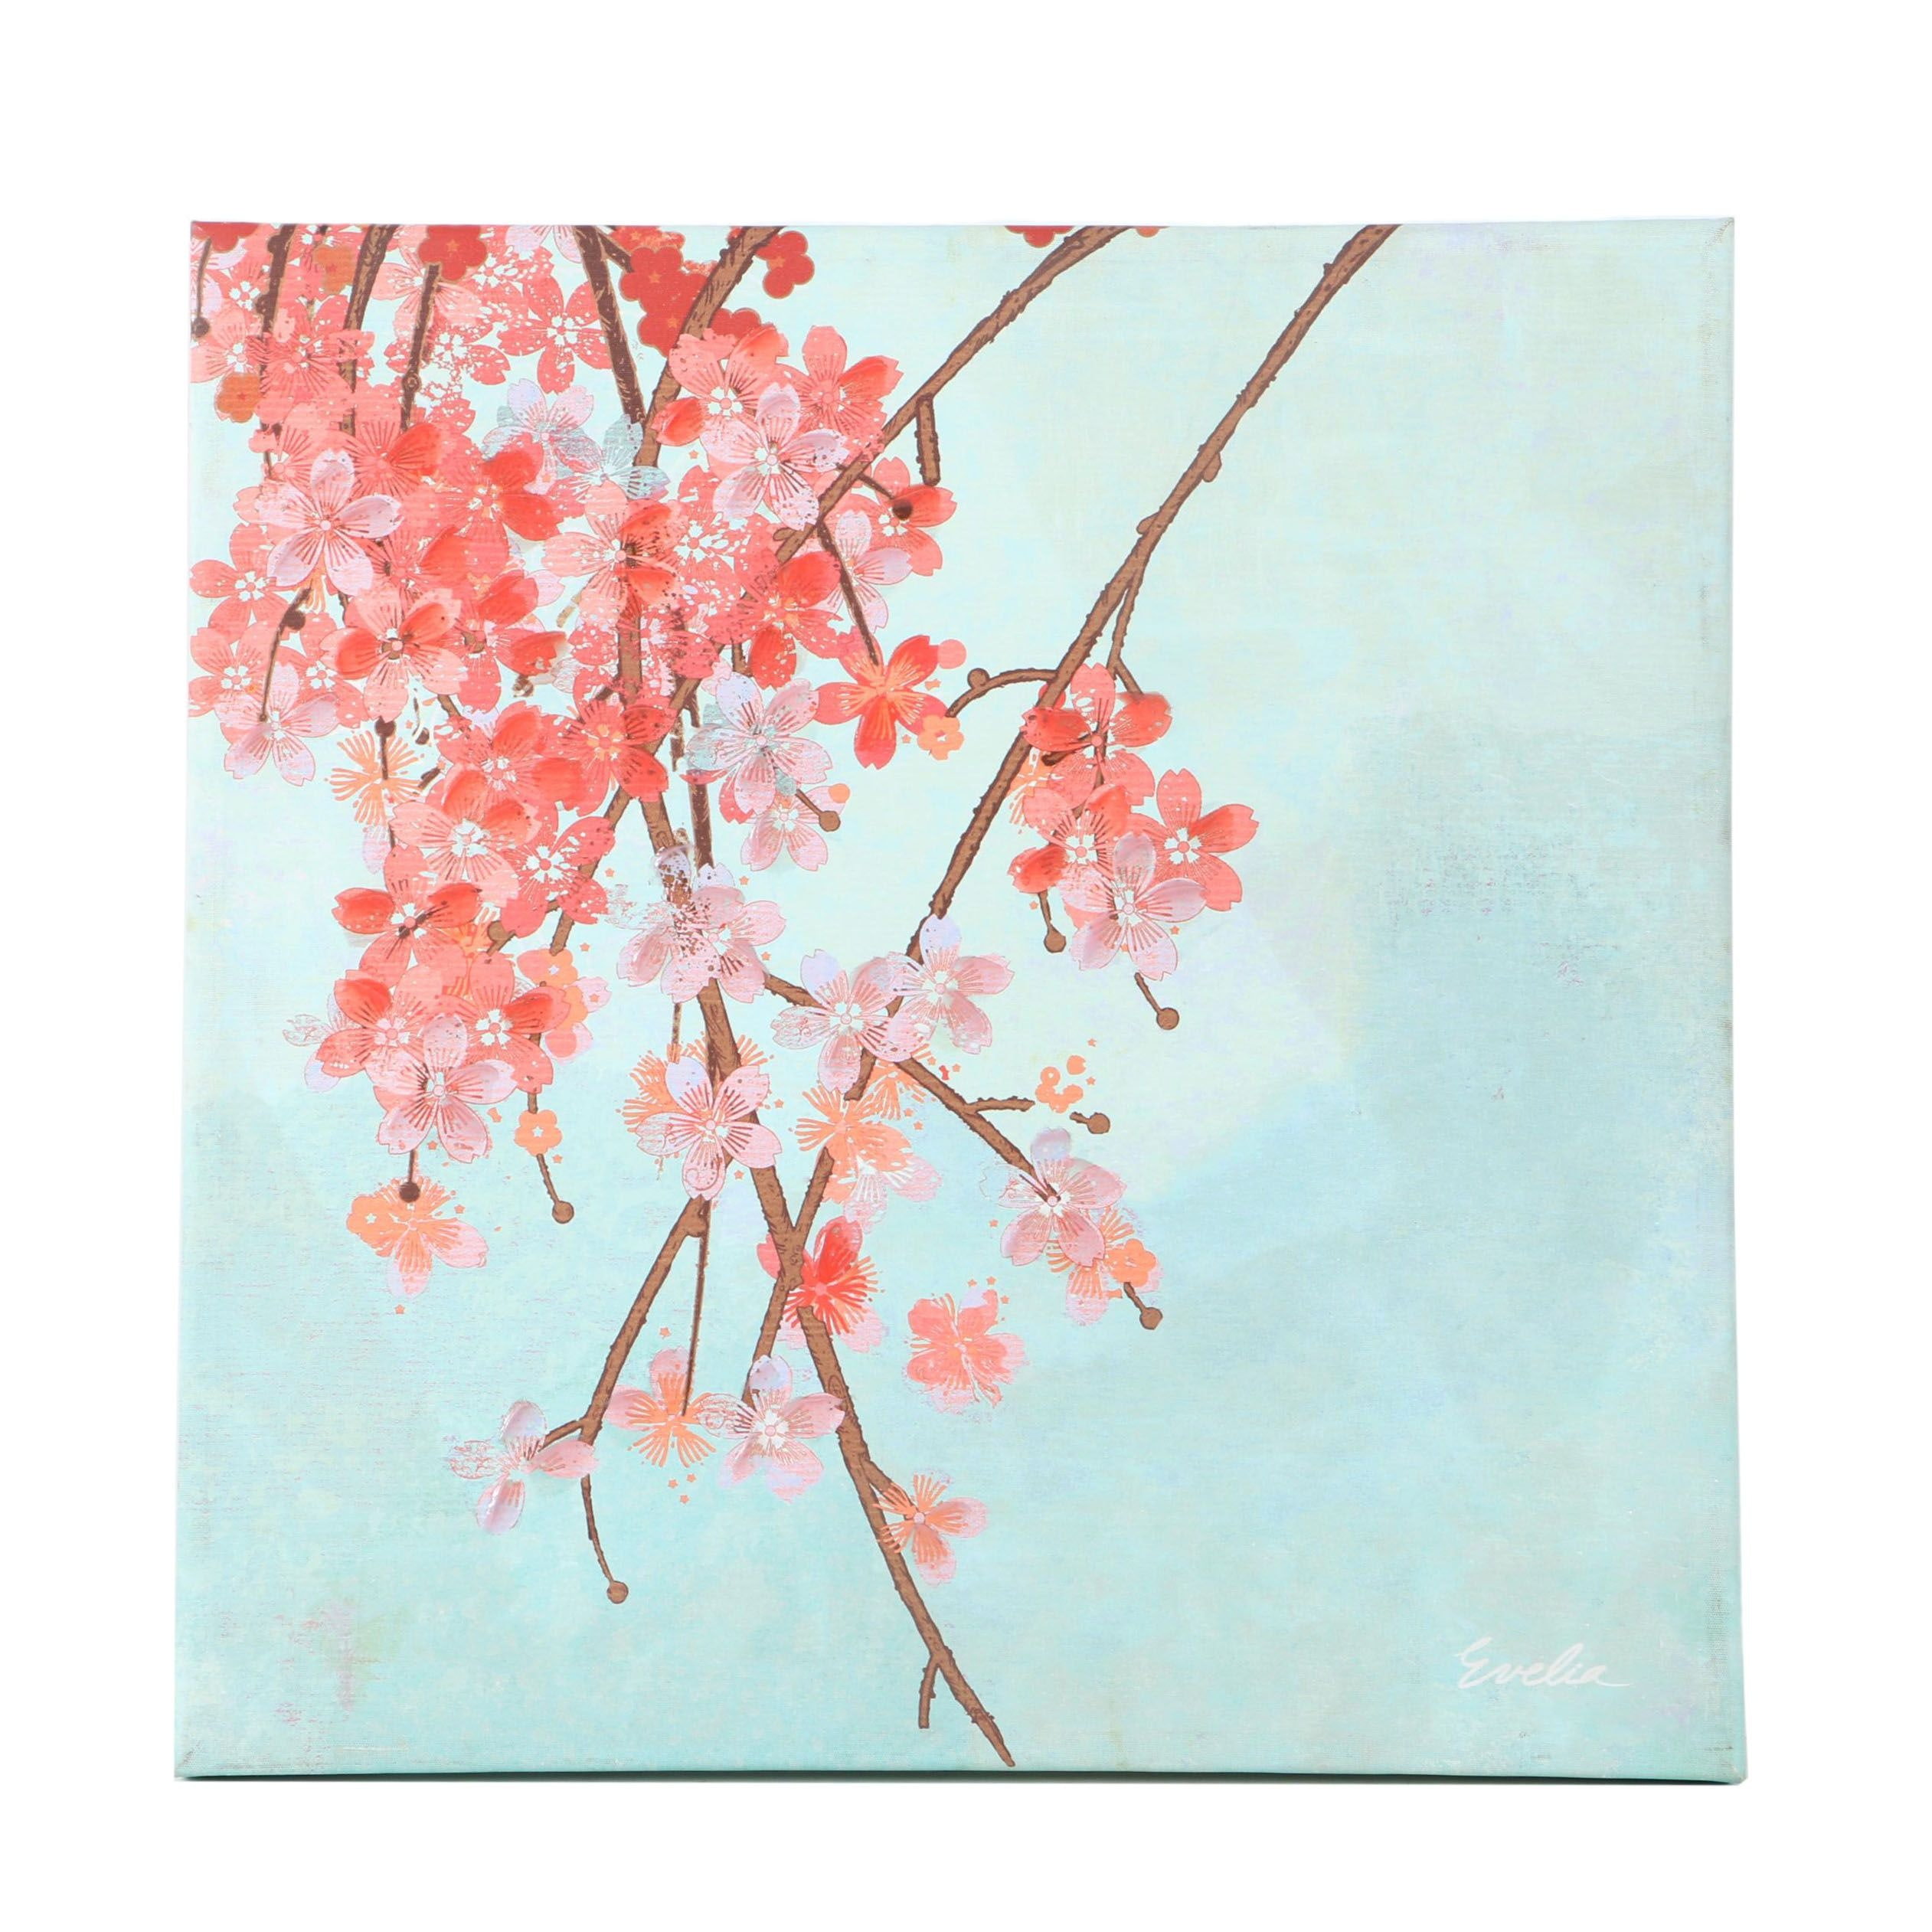 Evelia Embellished Giclee on Canvas of Cherry Blossoms